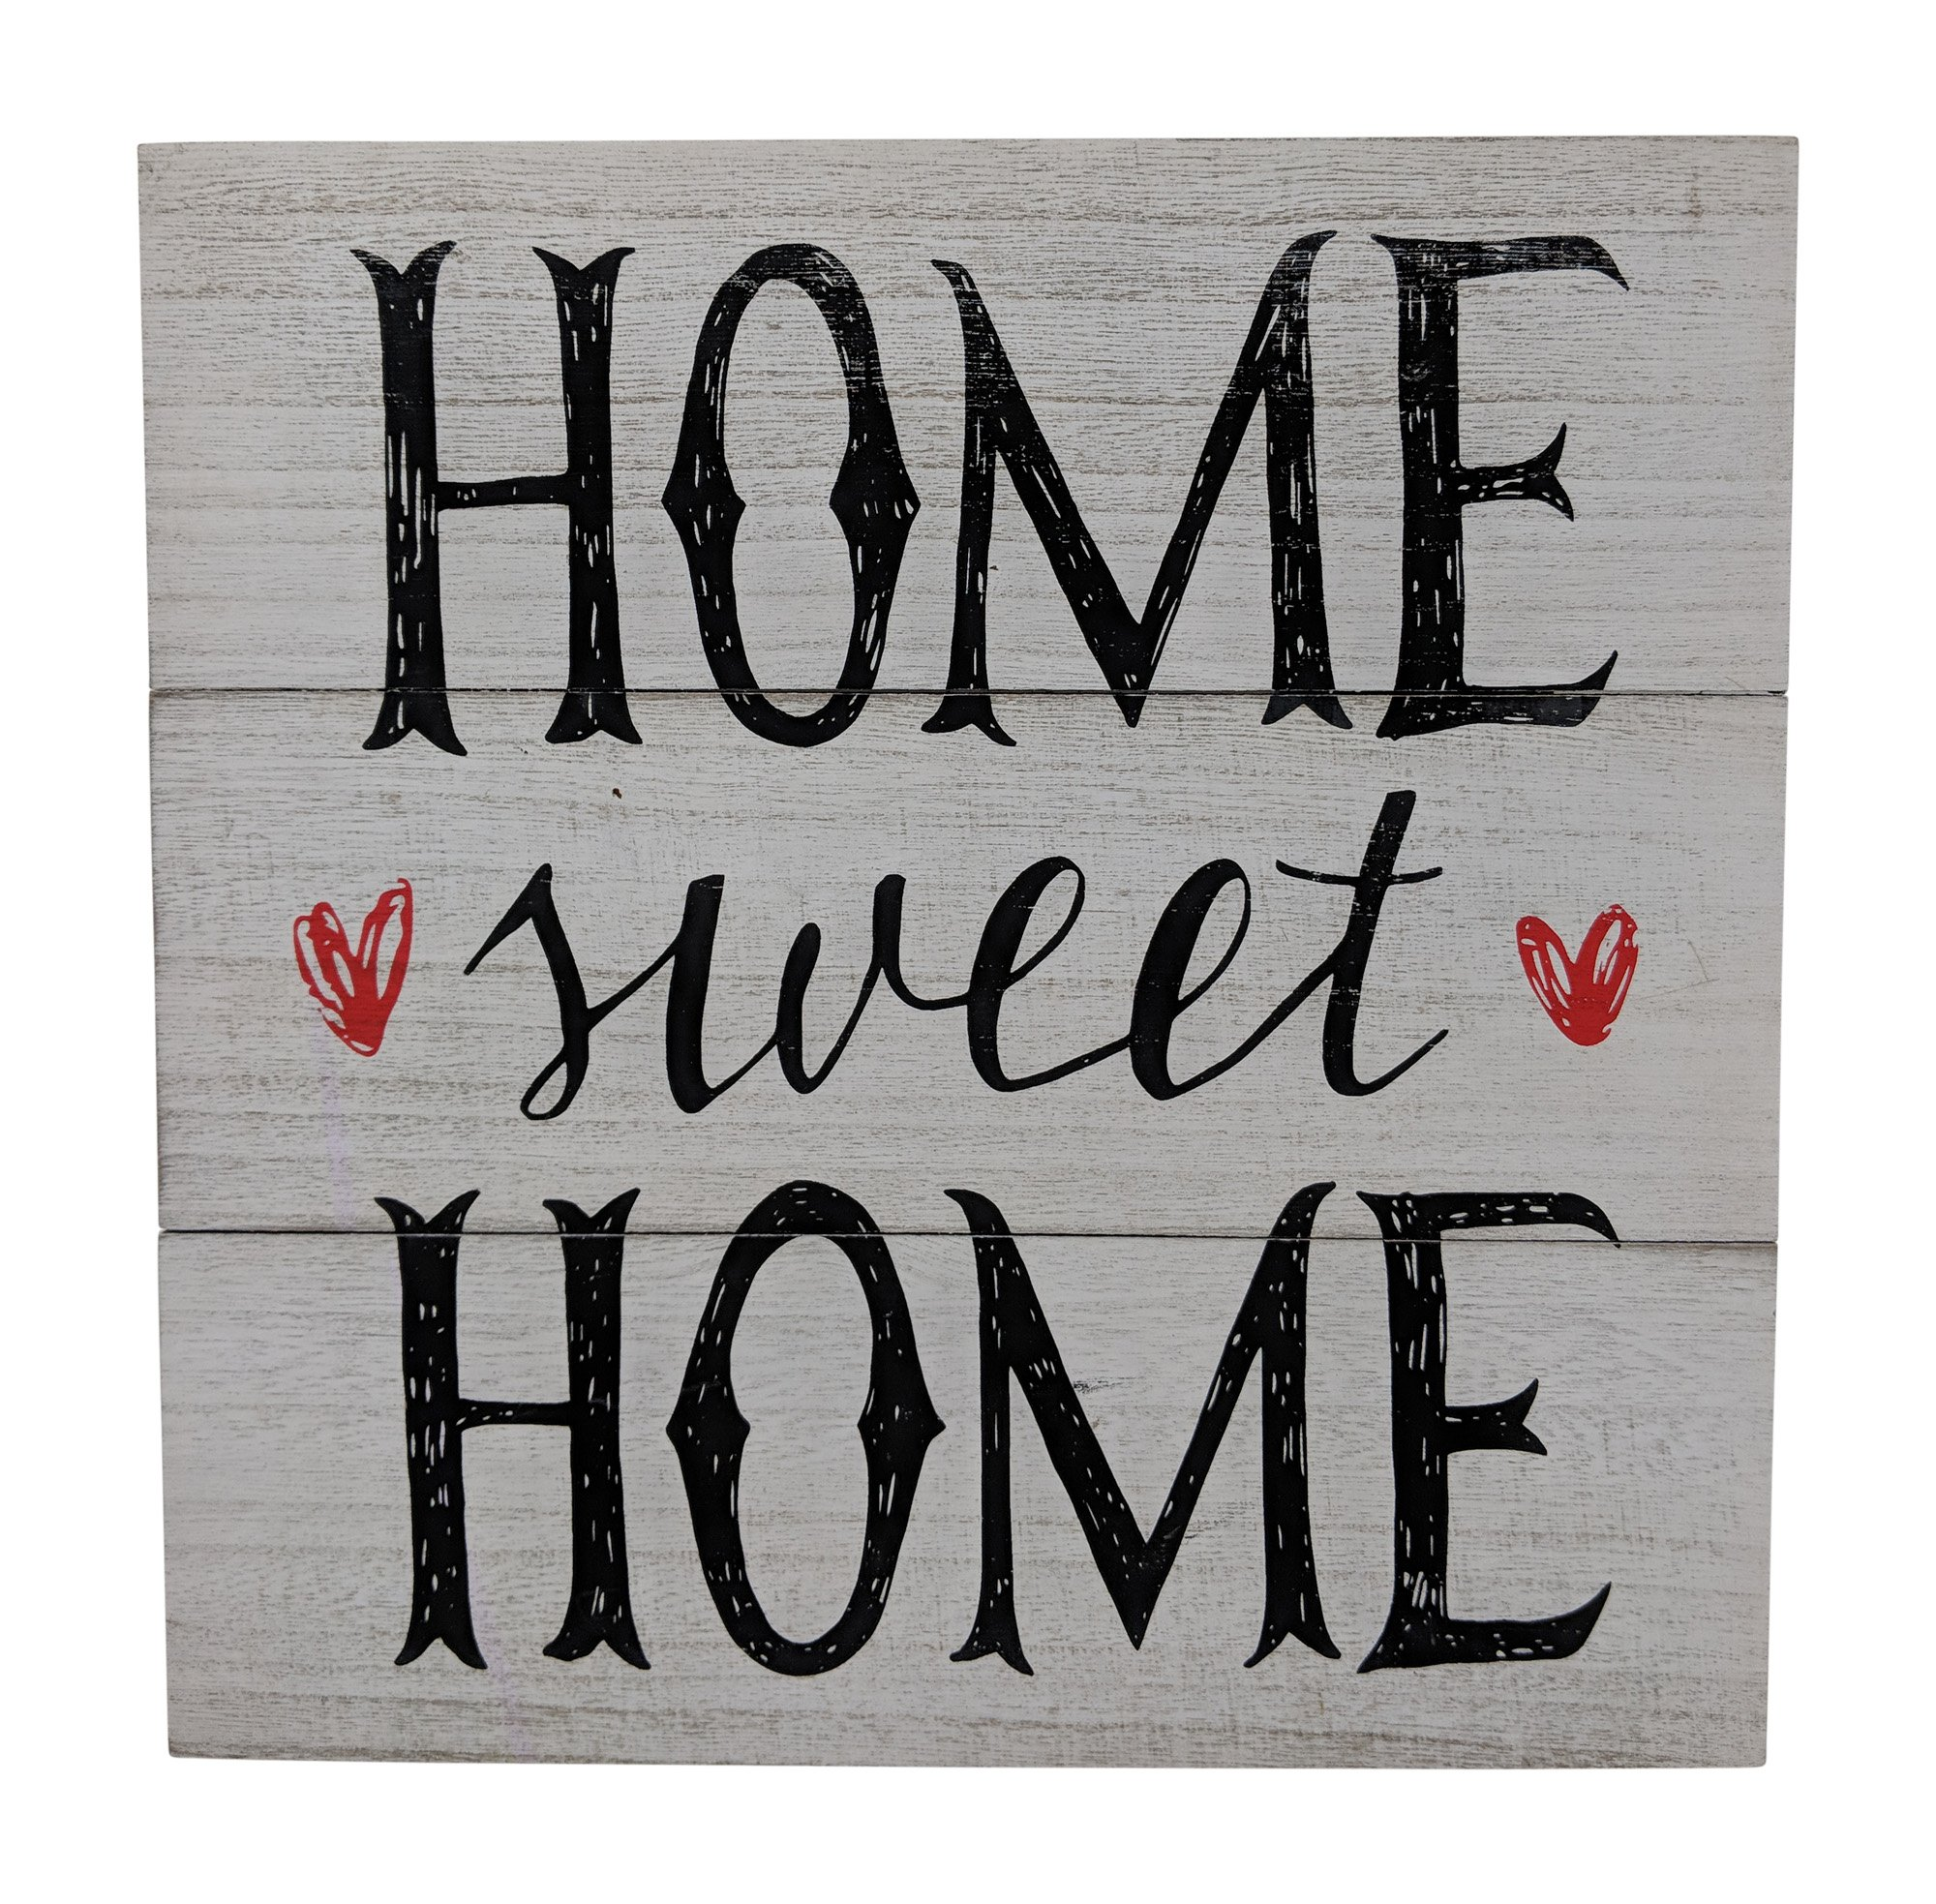 Gianna's Home Rustic Farmhouse Distressed Wood Plank Board Sign (Home Sweet Home) by Gianna's Home